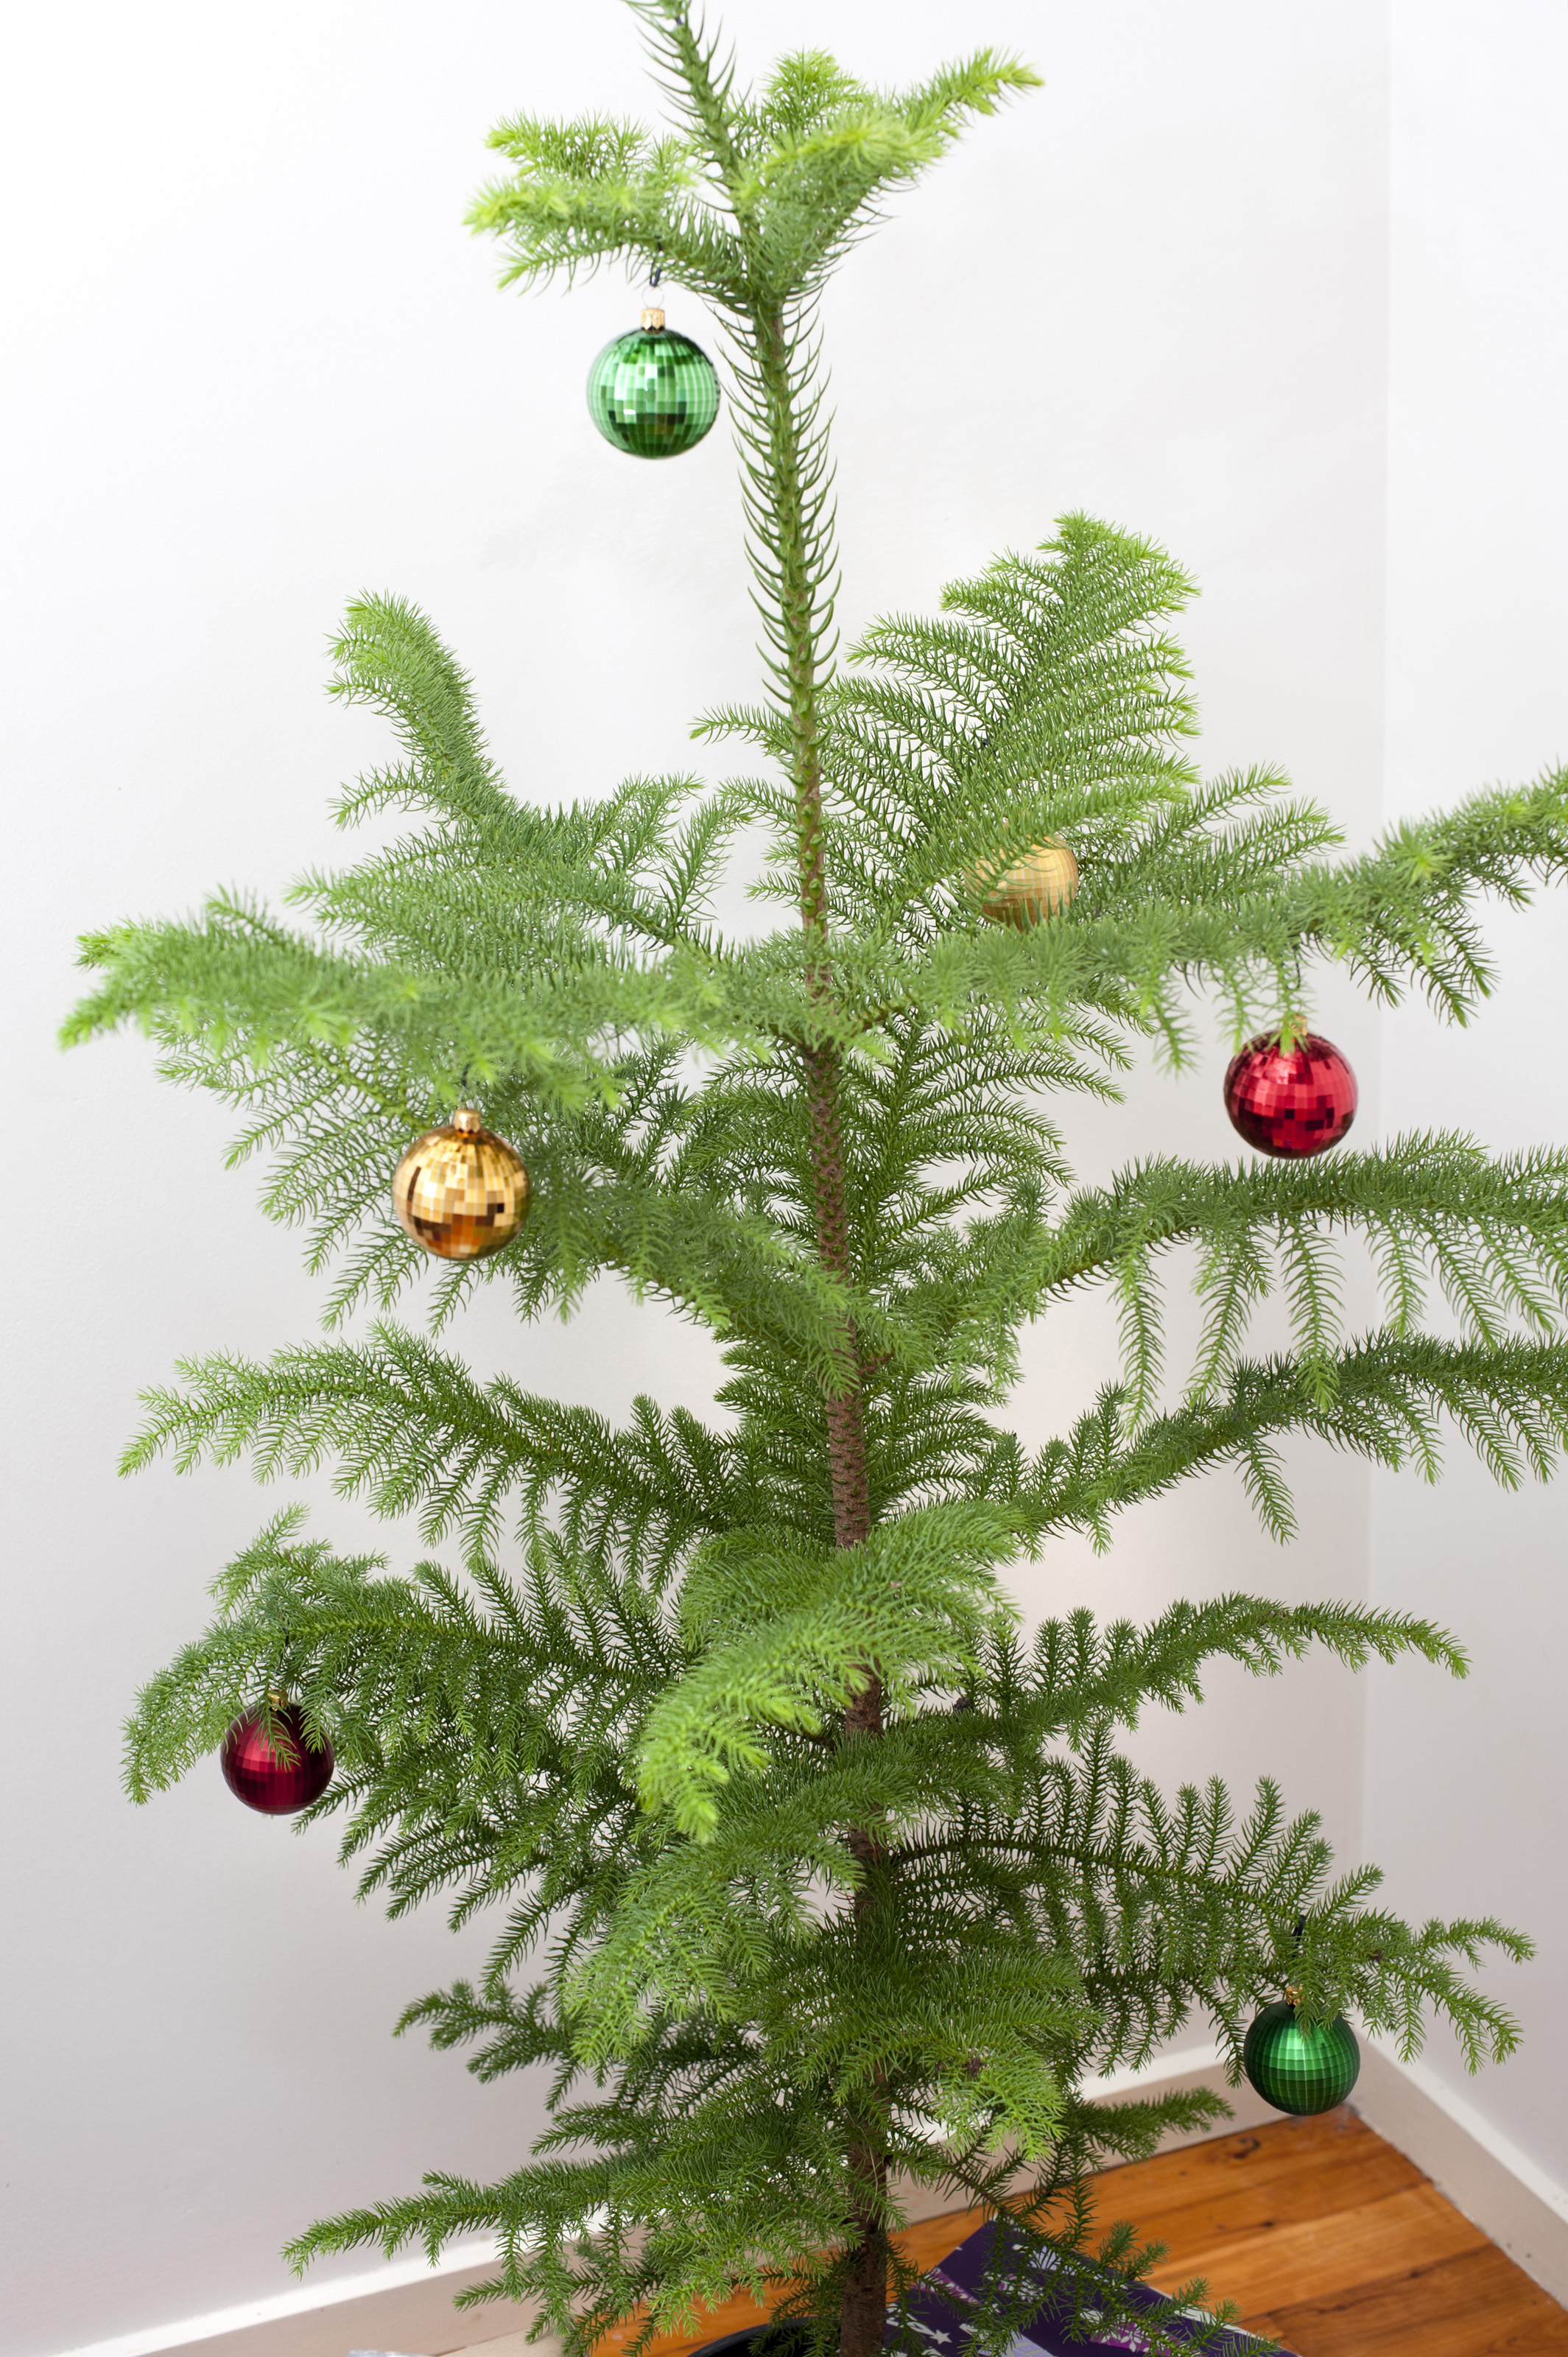 Free Stock Photo 8667 Real Christmas tree with colourful ...